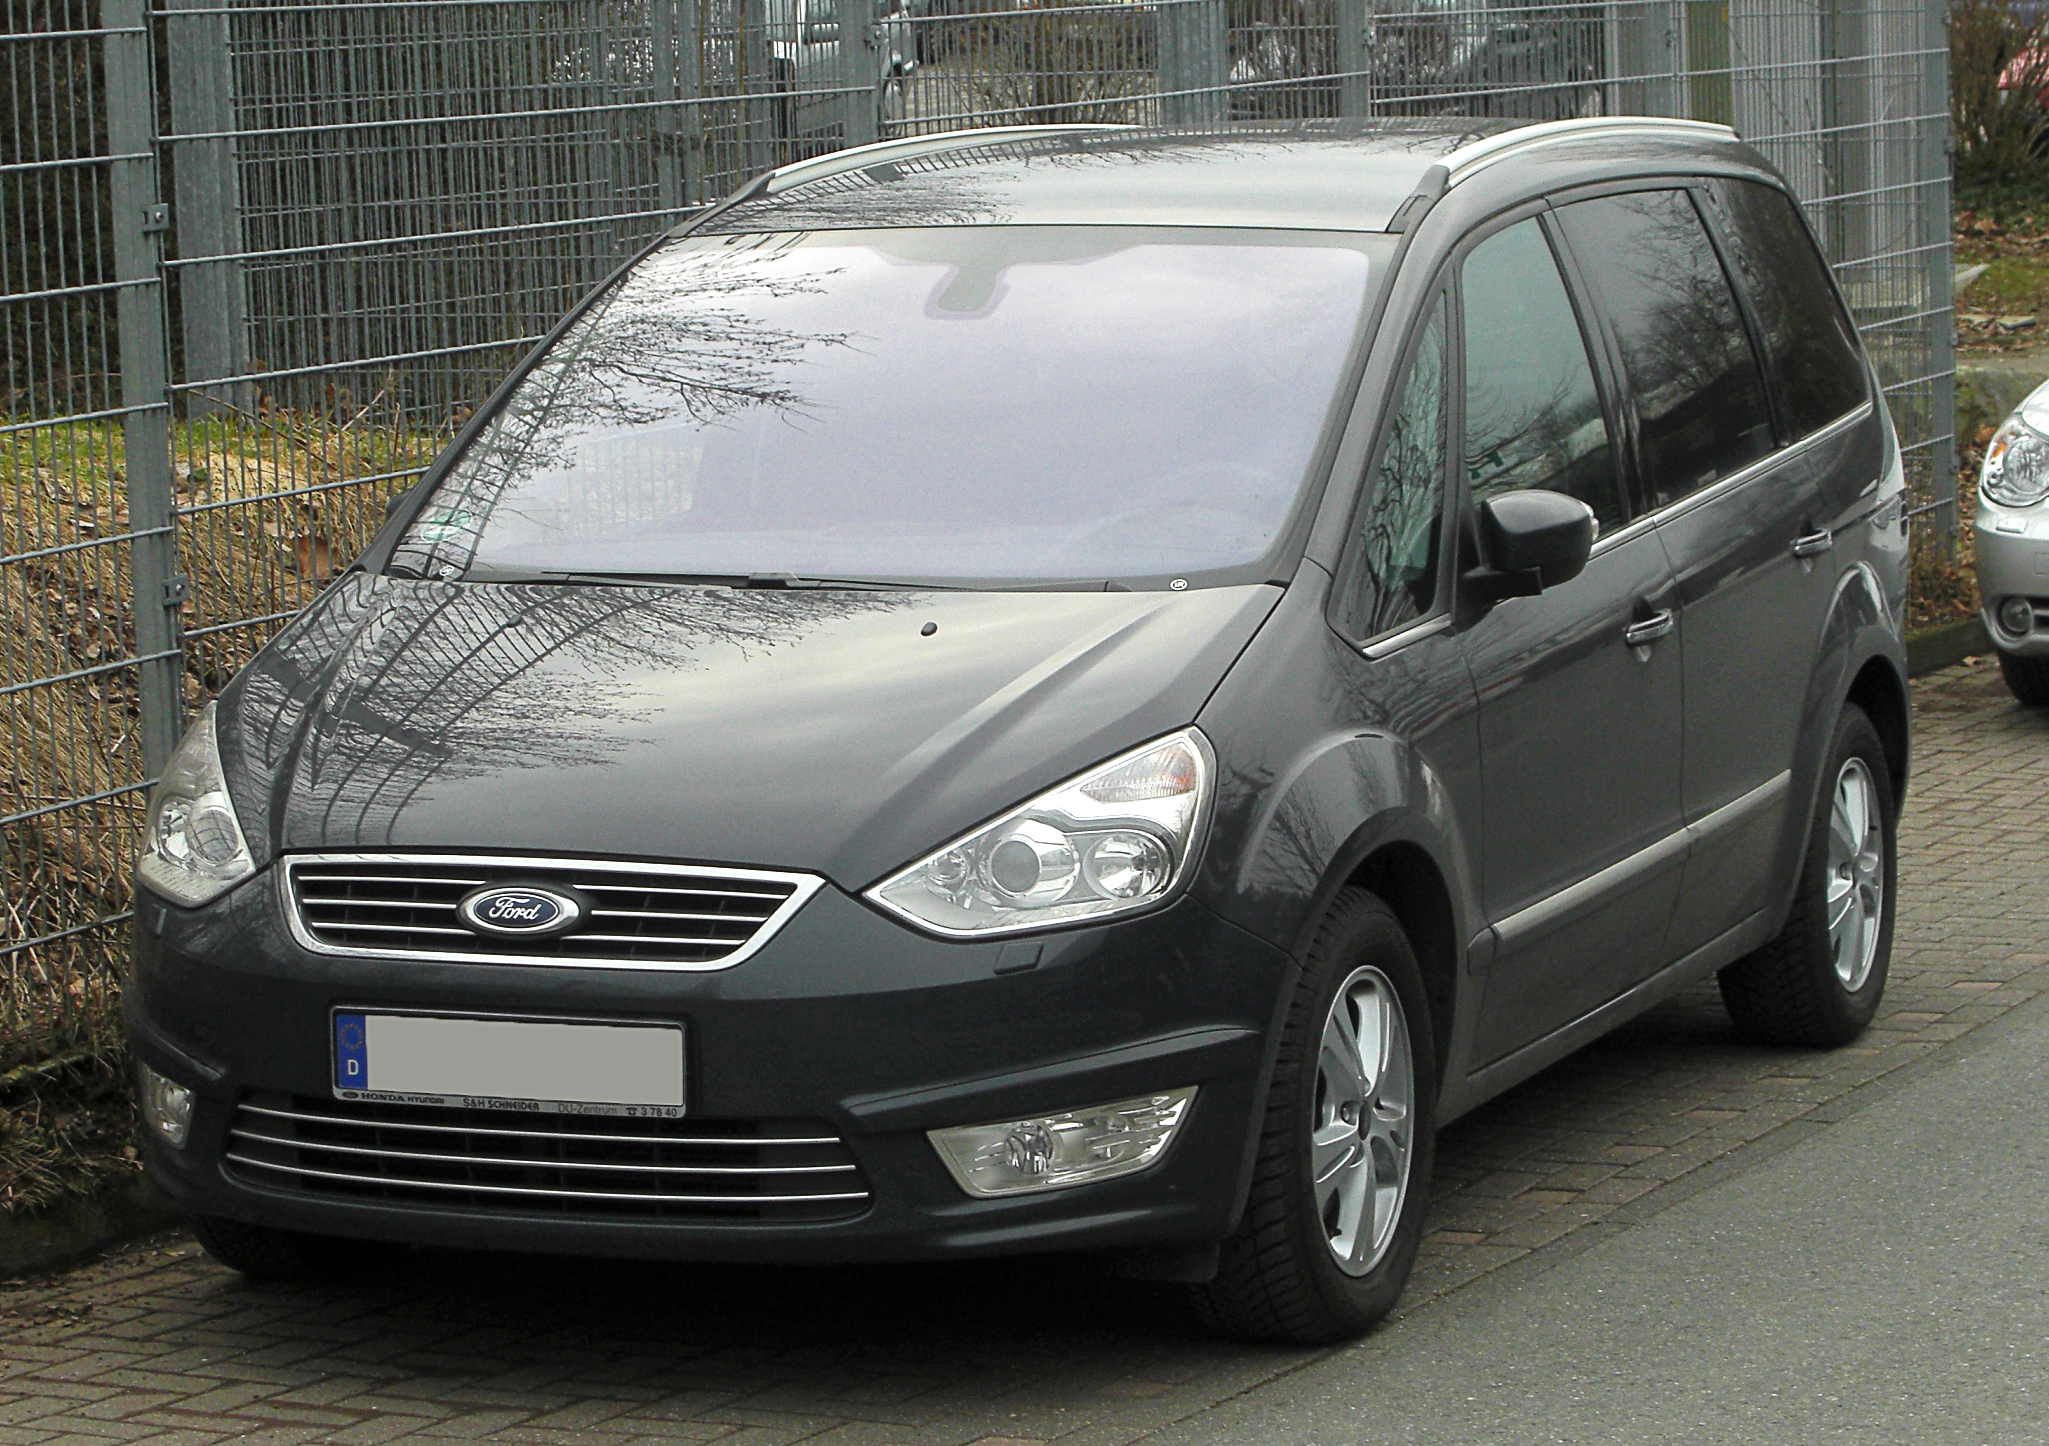 file ford galaxy 2 0 tdci titanium ii facelift frontansicht 20 februar 2011 w. Black Bedroom Furniture Sets. Home Design Ideas